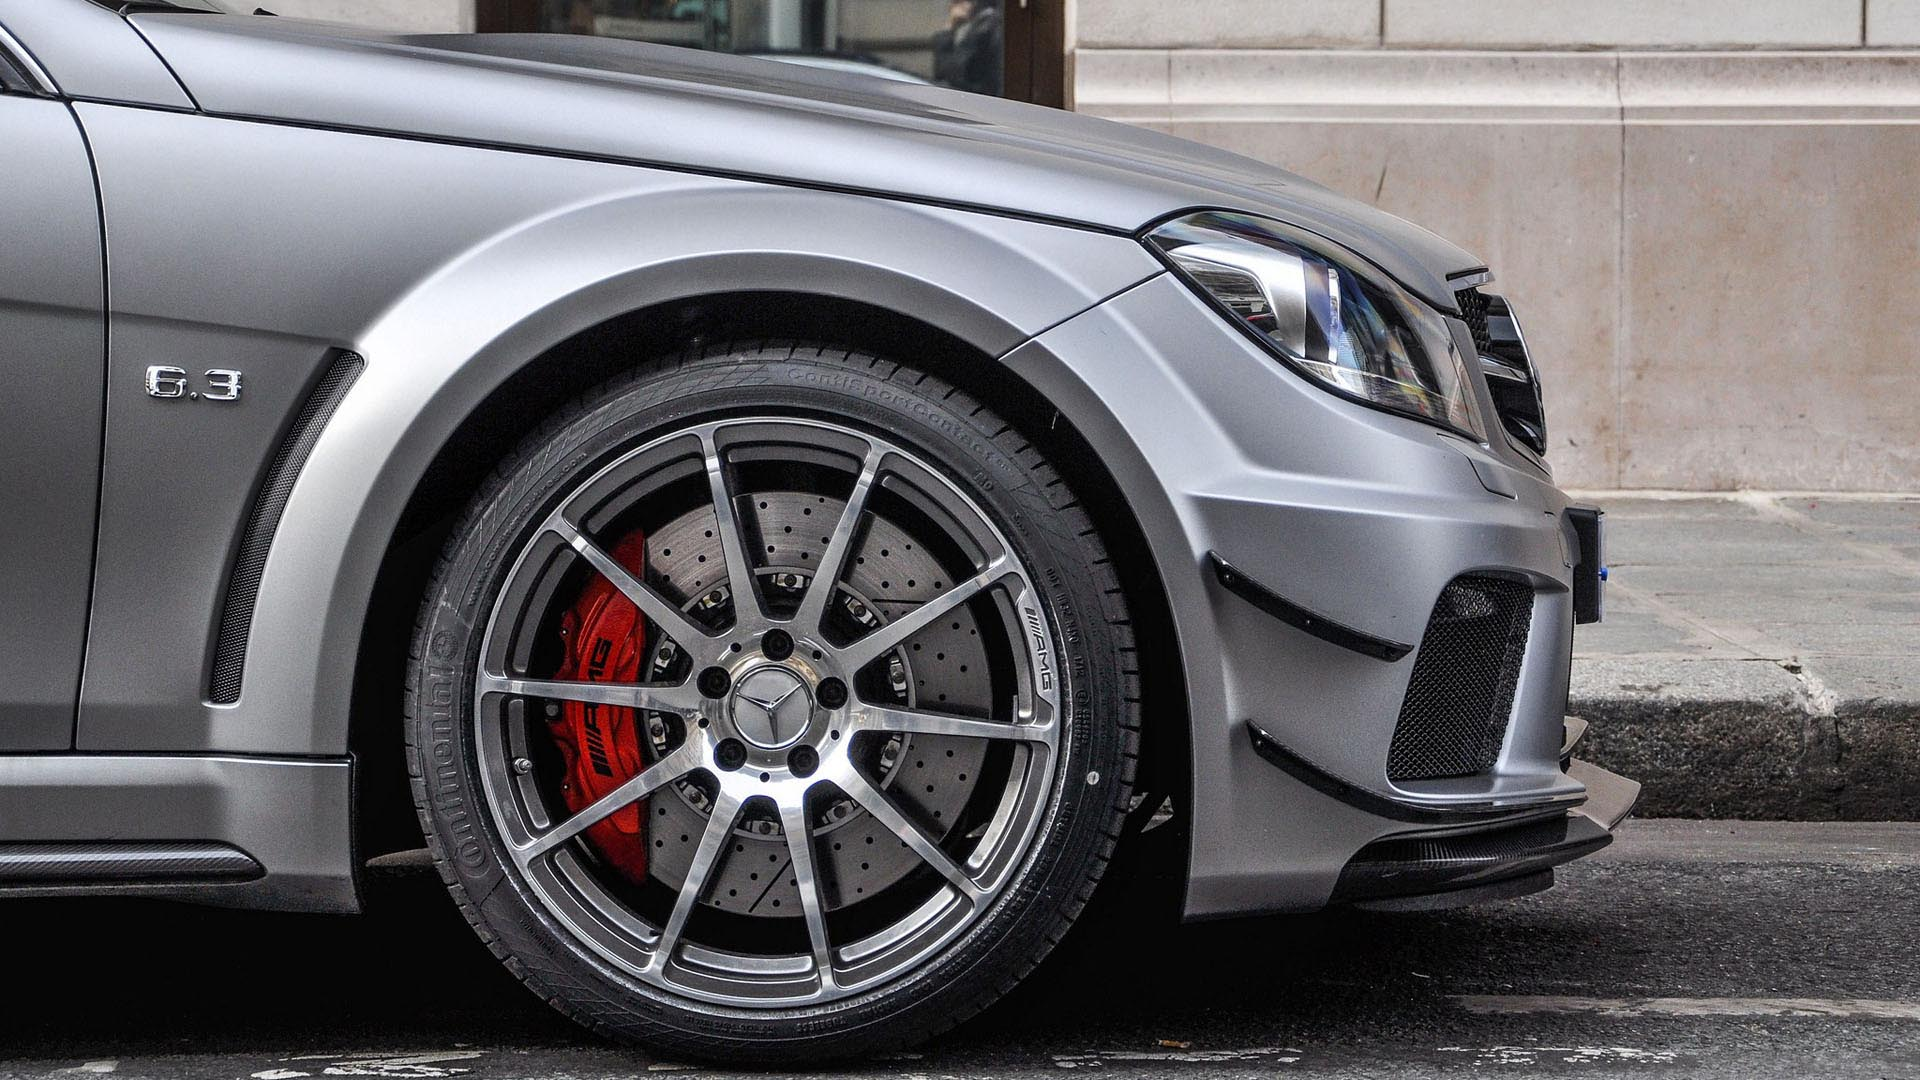 The Definitive Guide To Mercedes-AMG Brake Retrofit Options